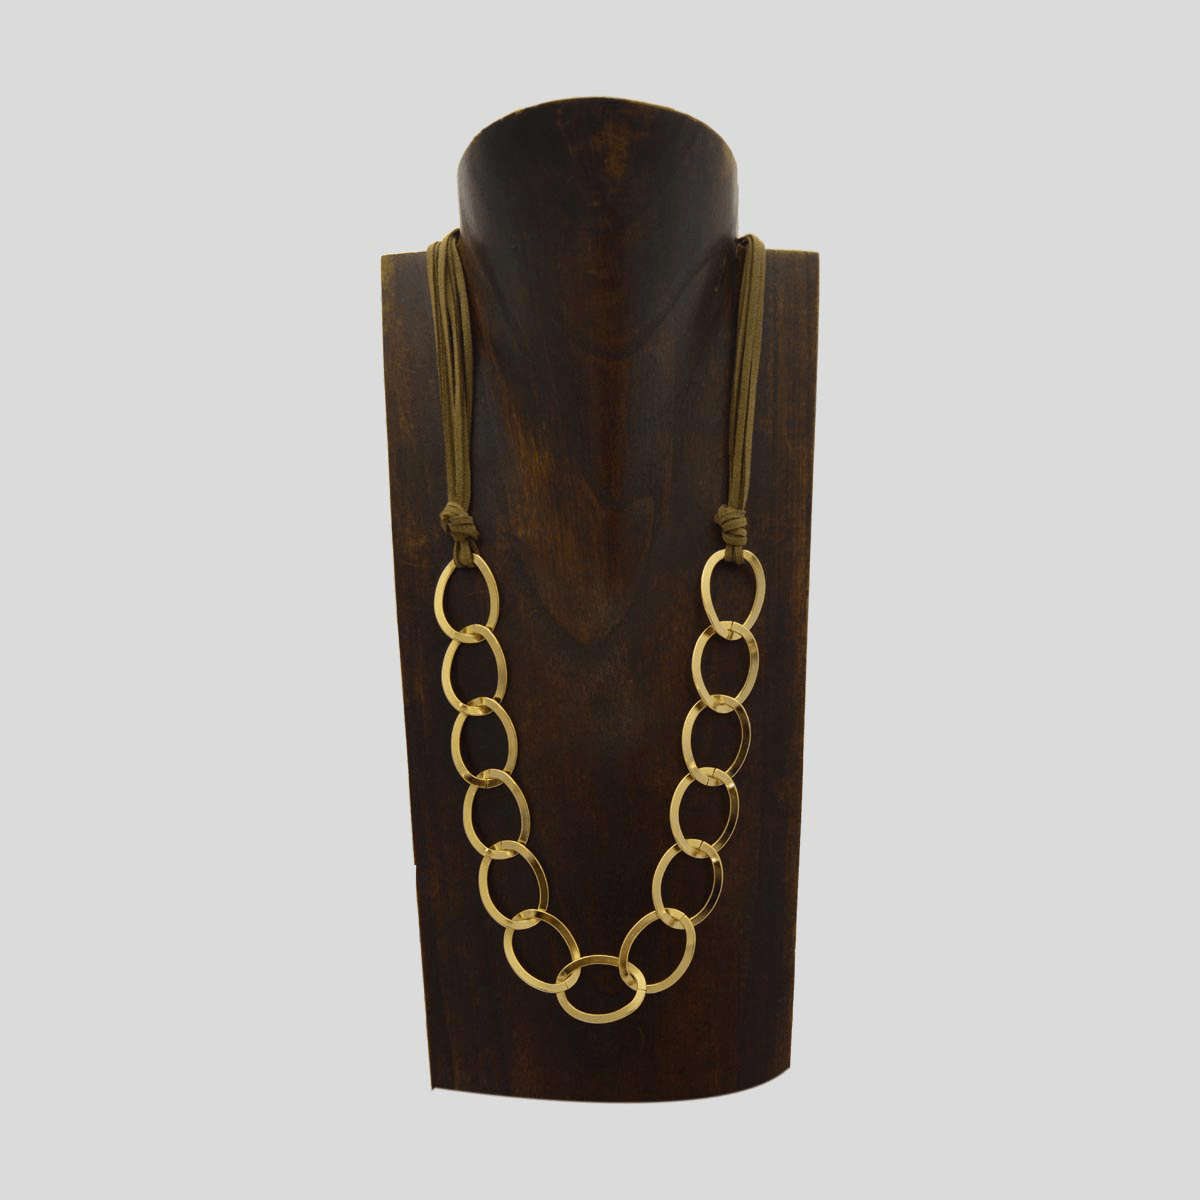 Mississippi medium necklace of golden links caught with brown suede on the neck